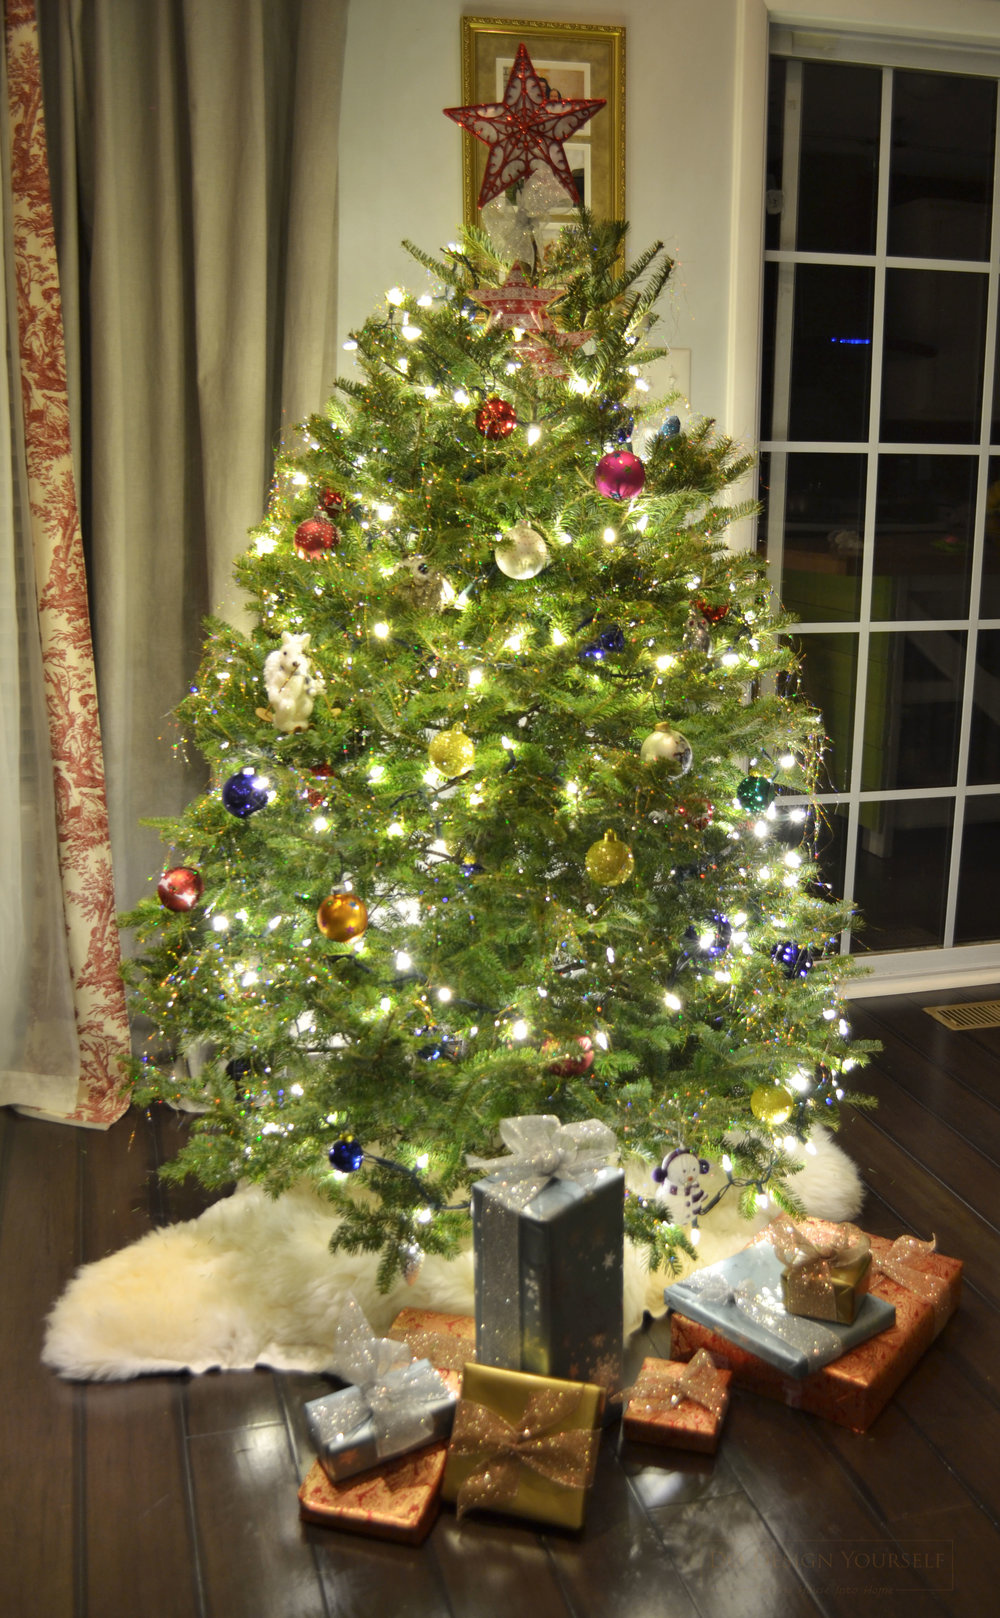 Colorful Christmas tree with white lights, wrapped gift and a white ship skin as a Christmas tree skirt.